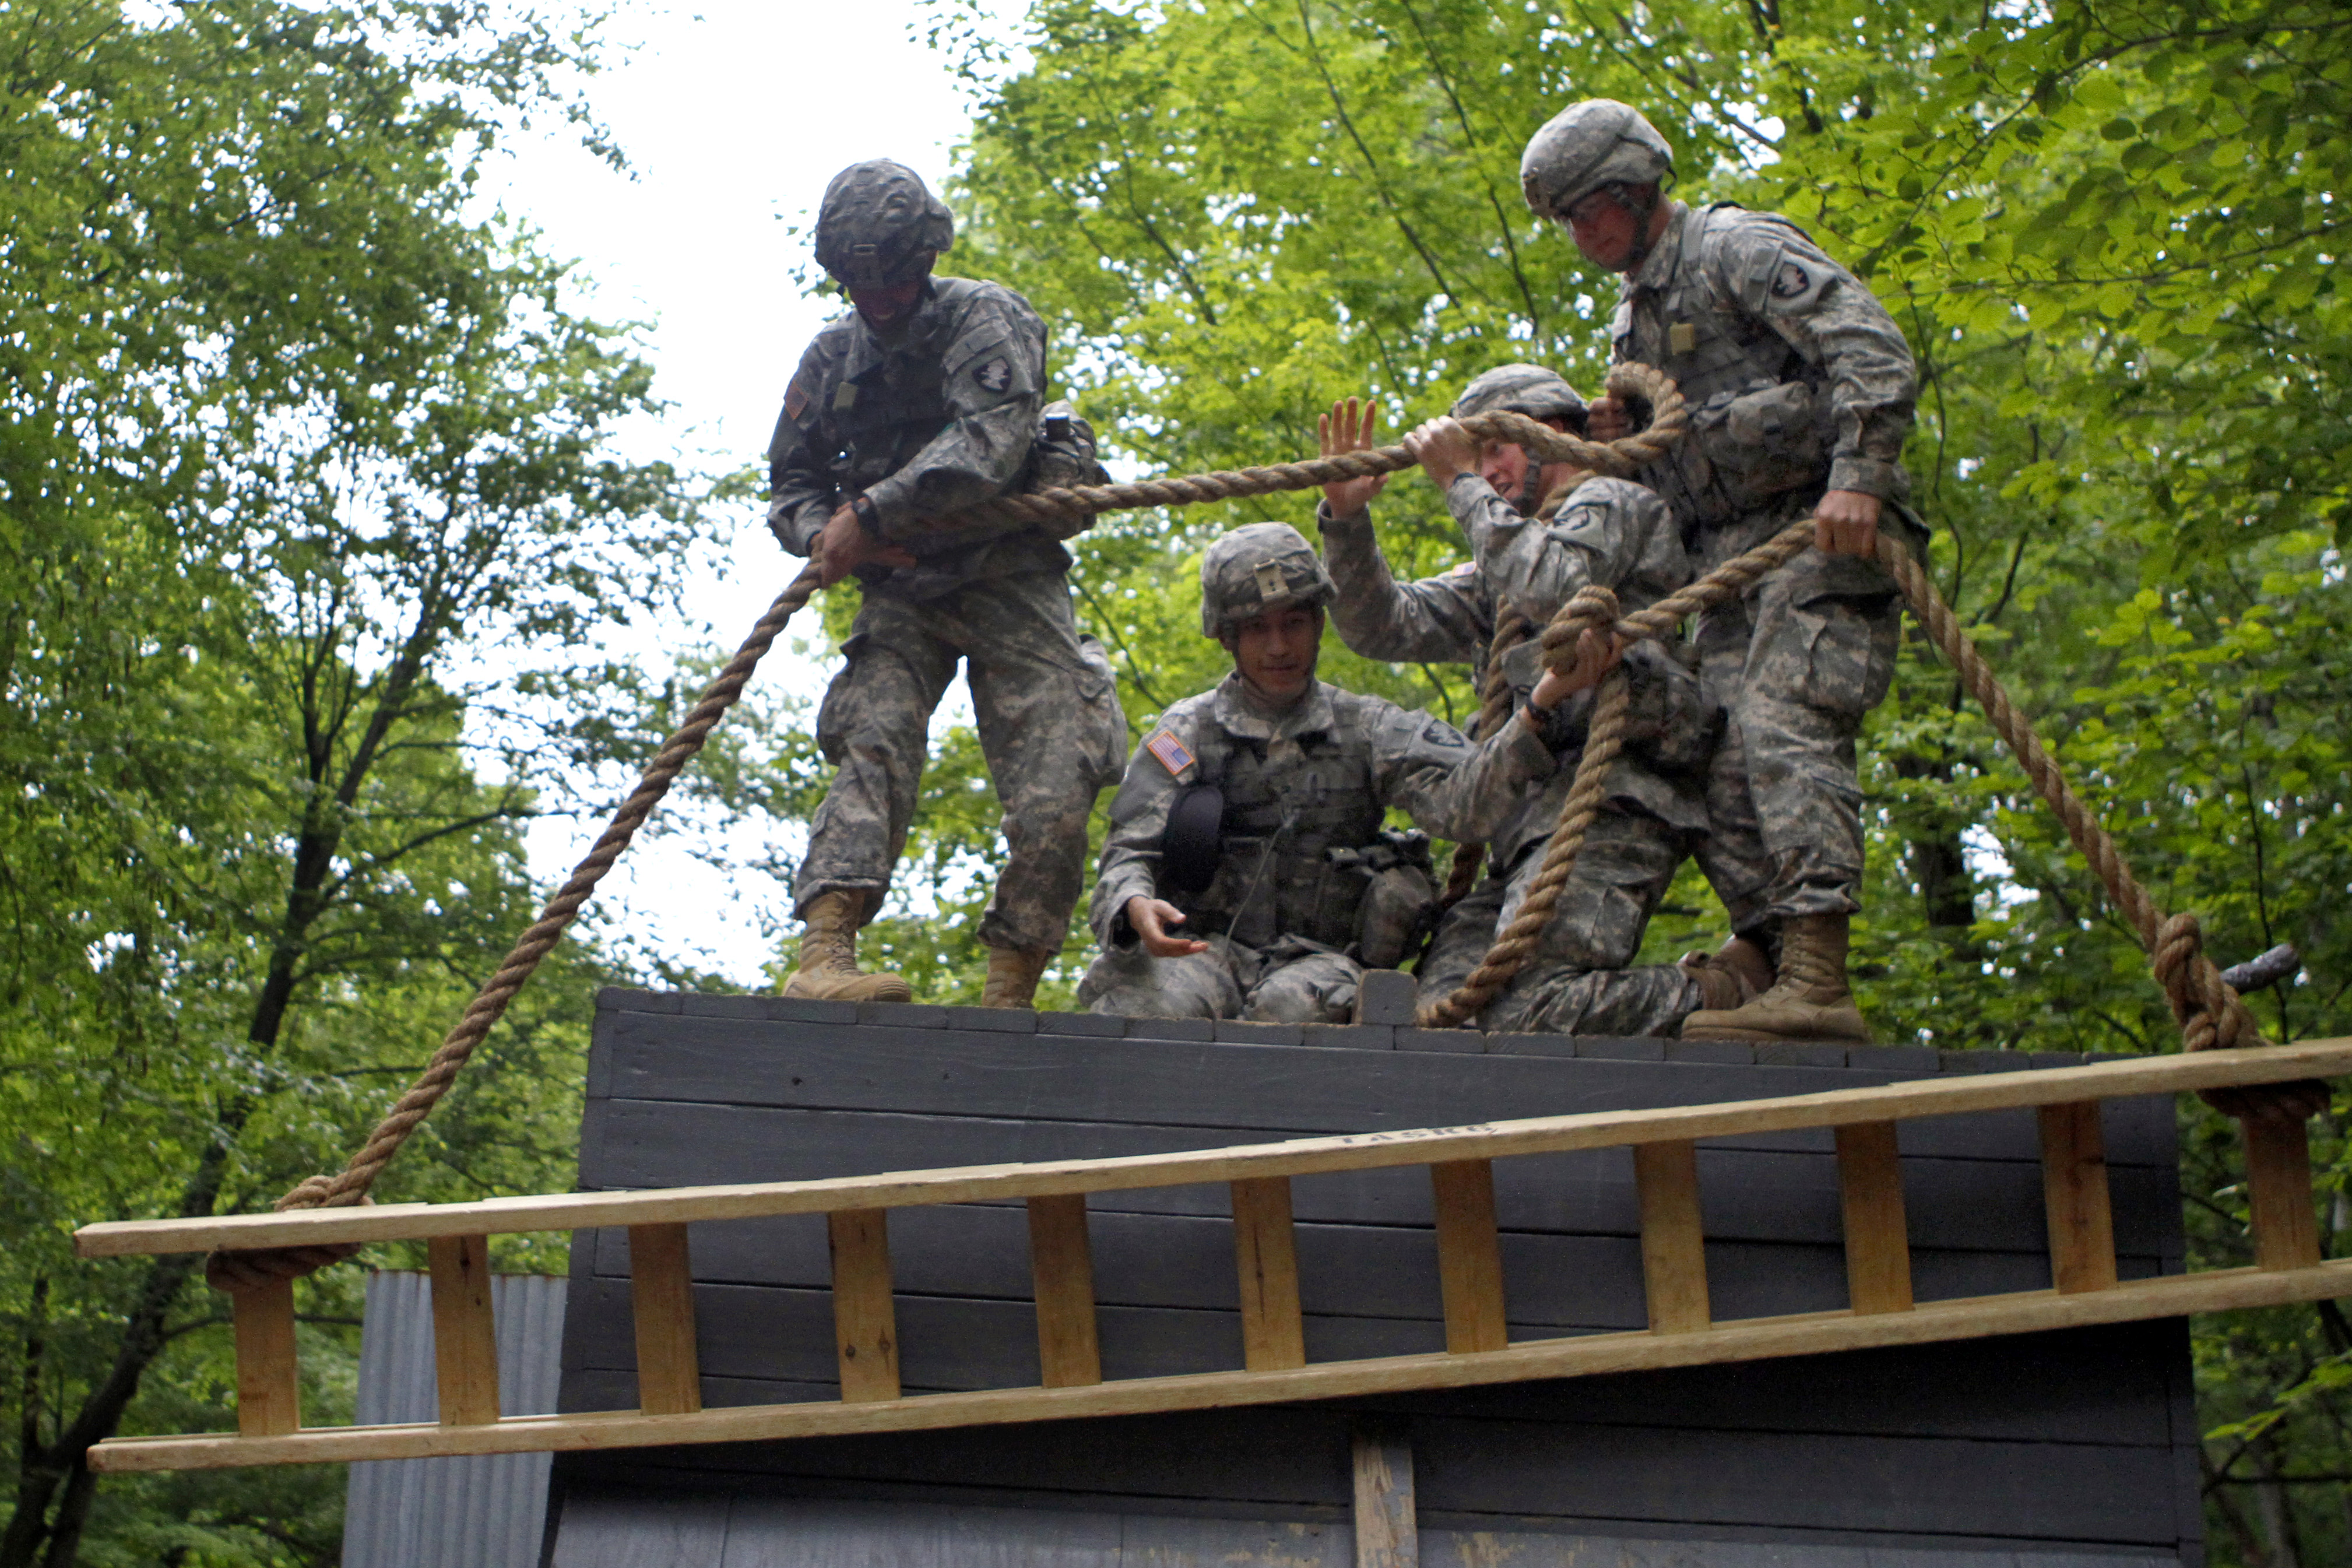 essays on leadership in the army Free essays on military leadership get help with your writing 1 through 30.